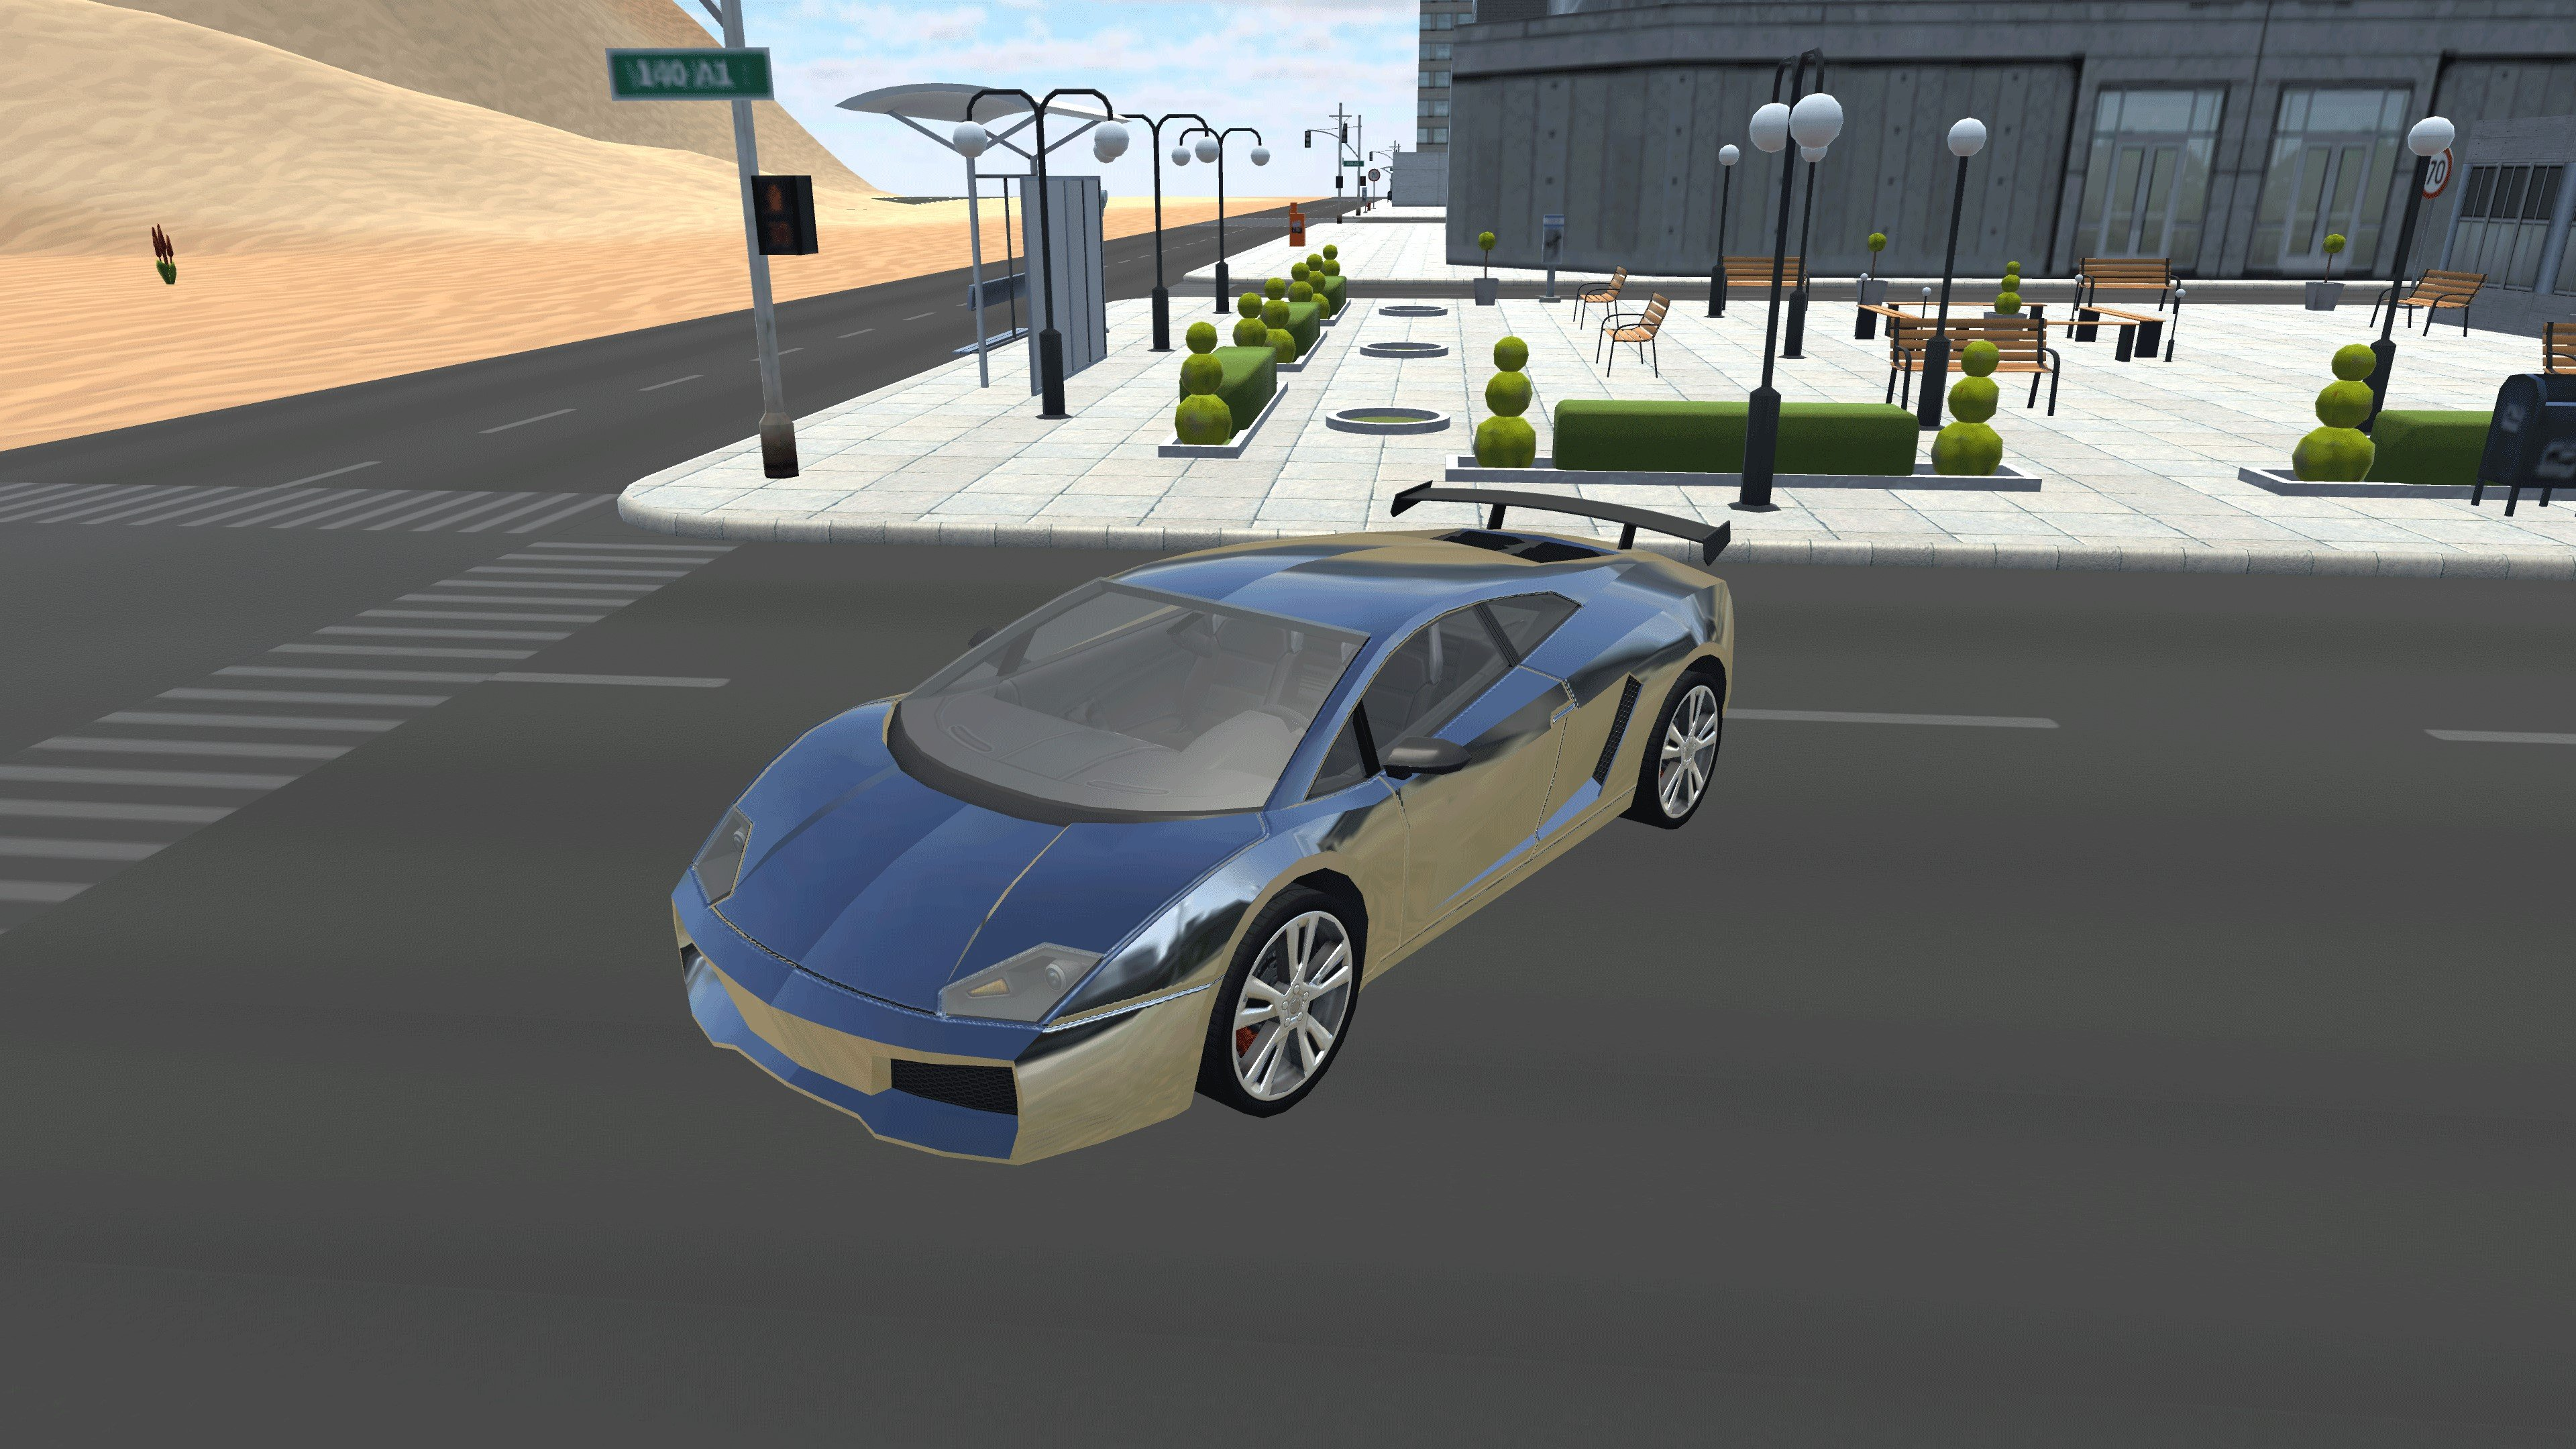 extreme car driving simulator 3d alternatives and similar games